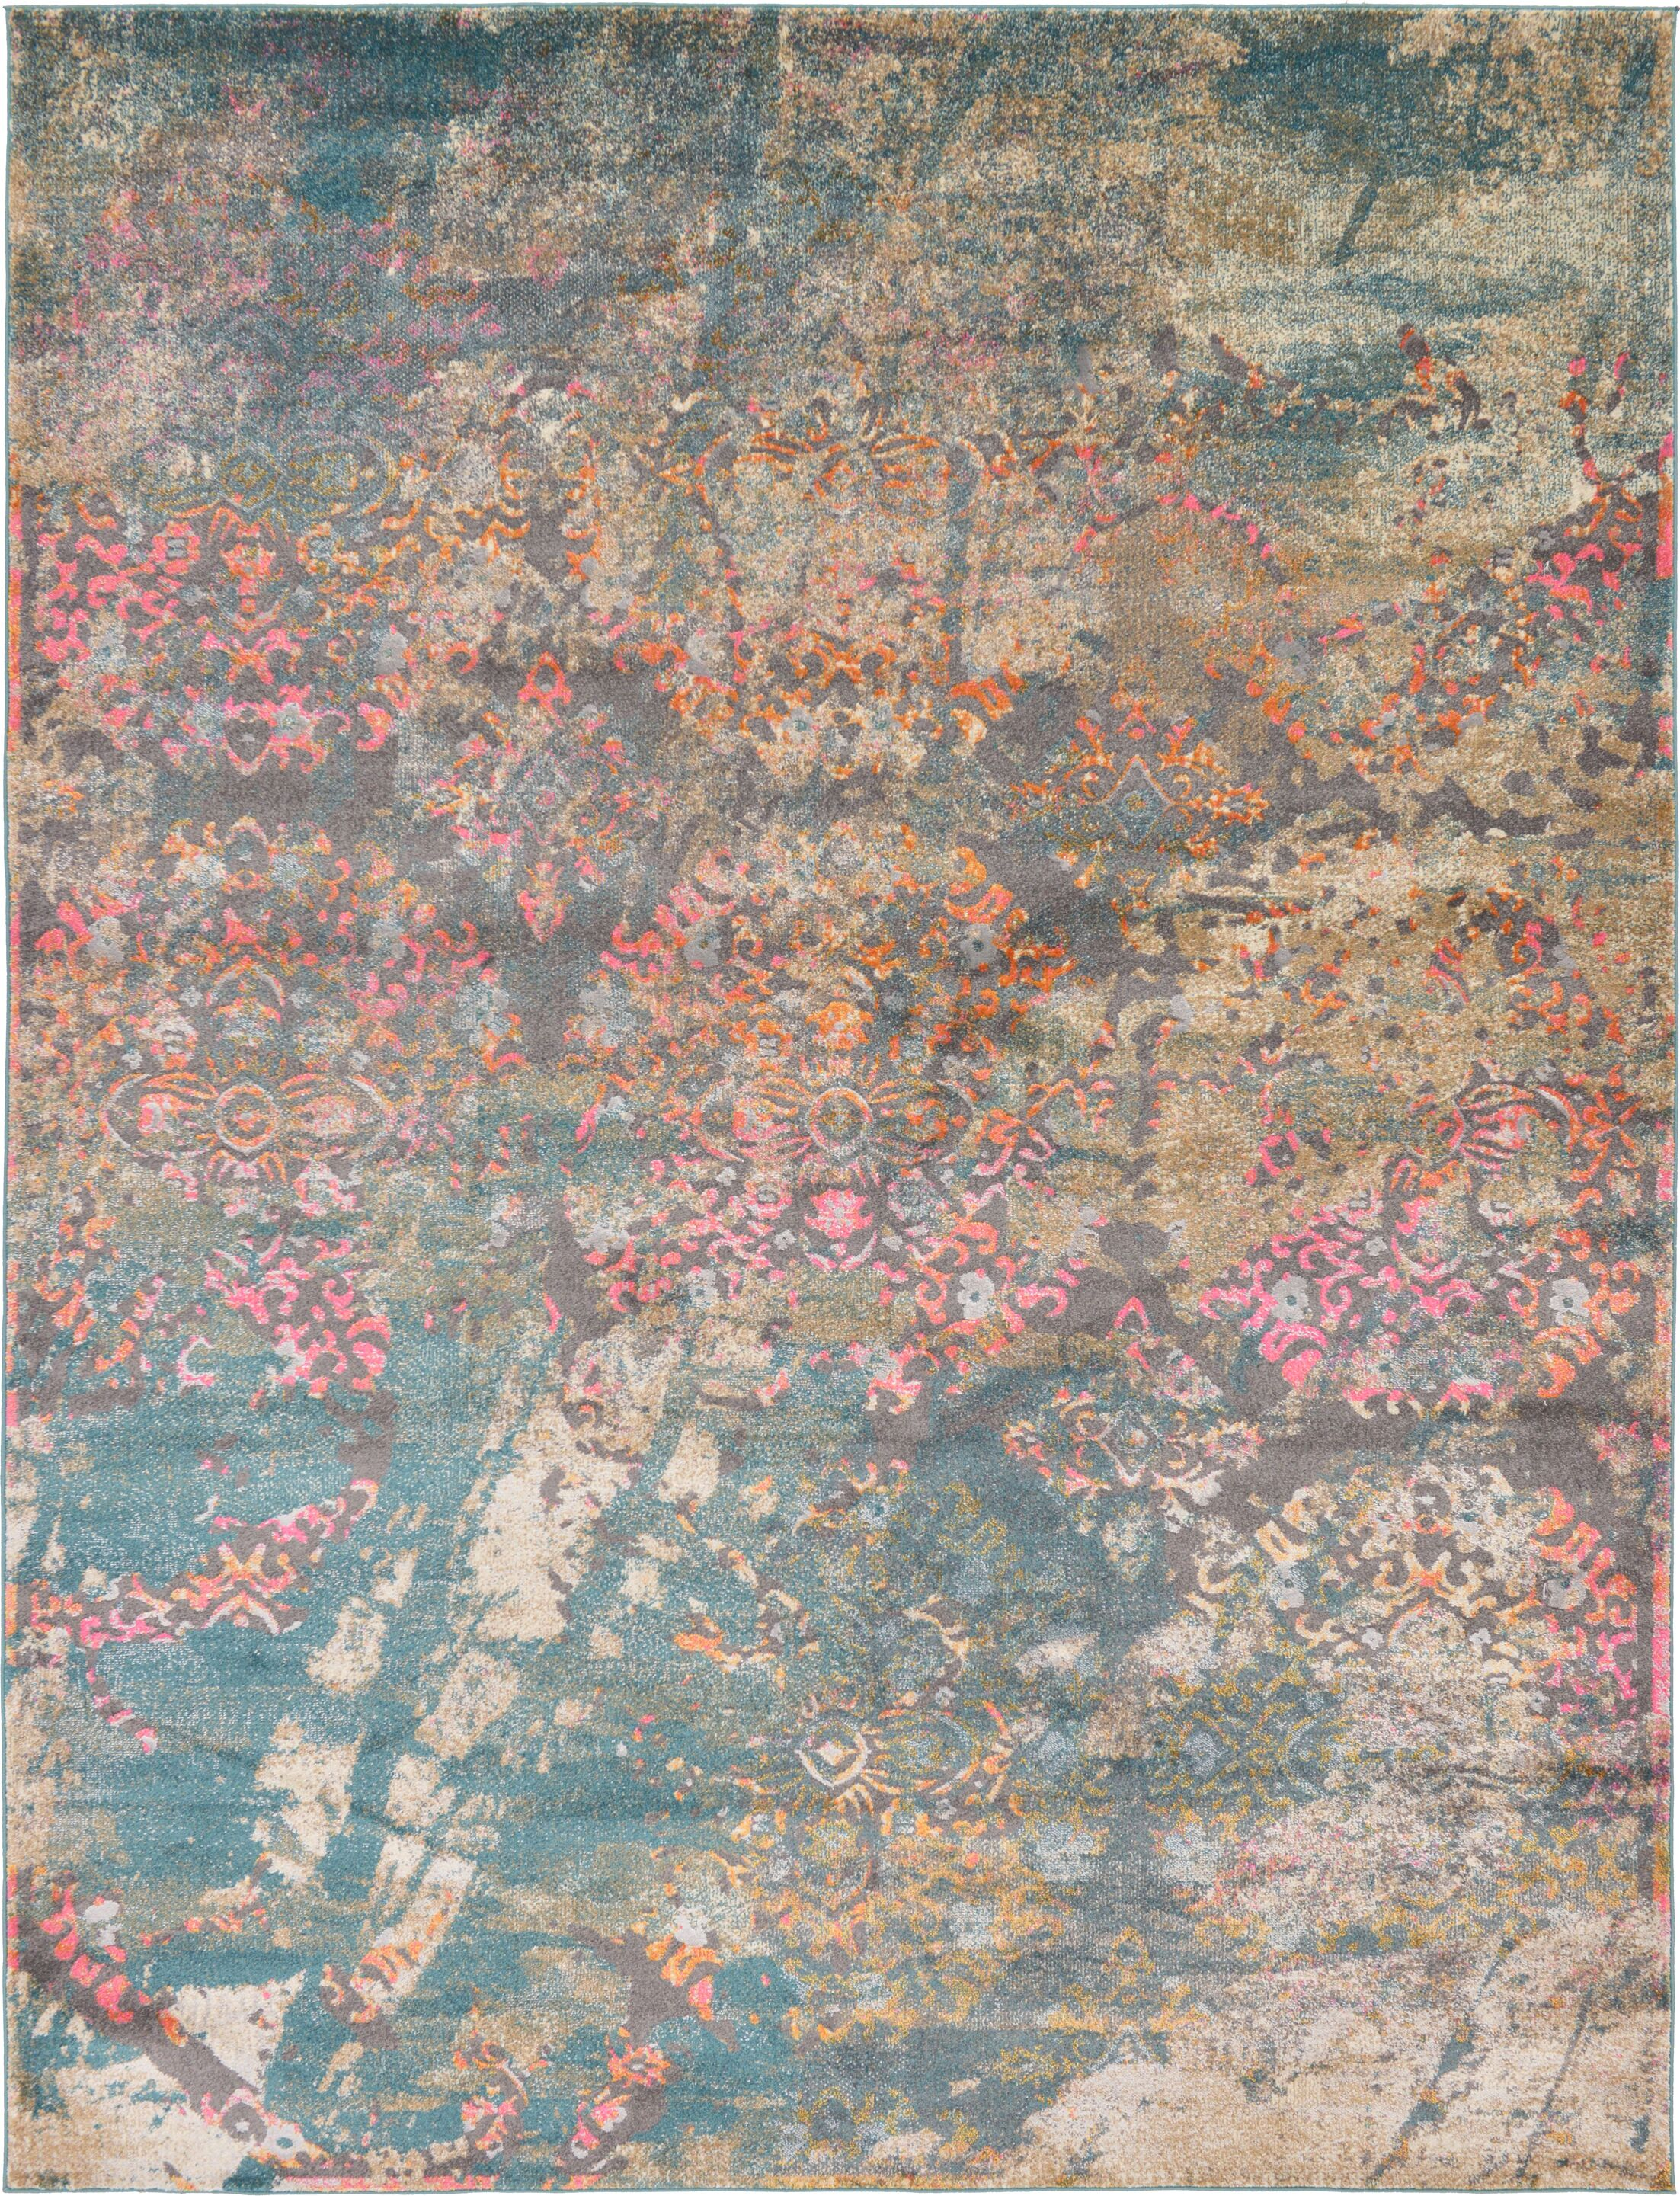 Cherry Street Gray Area Rug Rug Size: Rectangle 9' x 12'